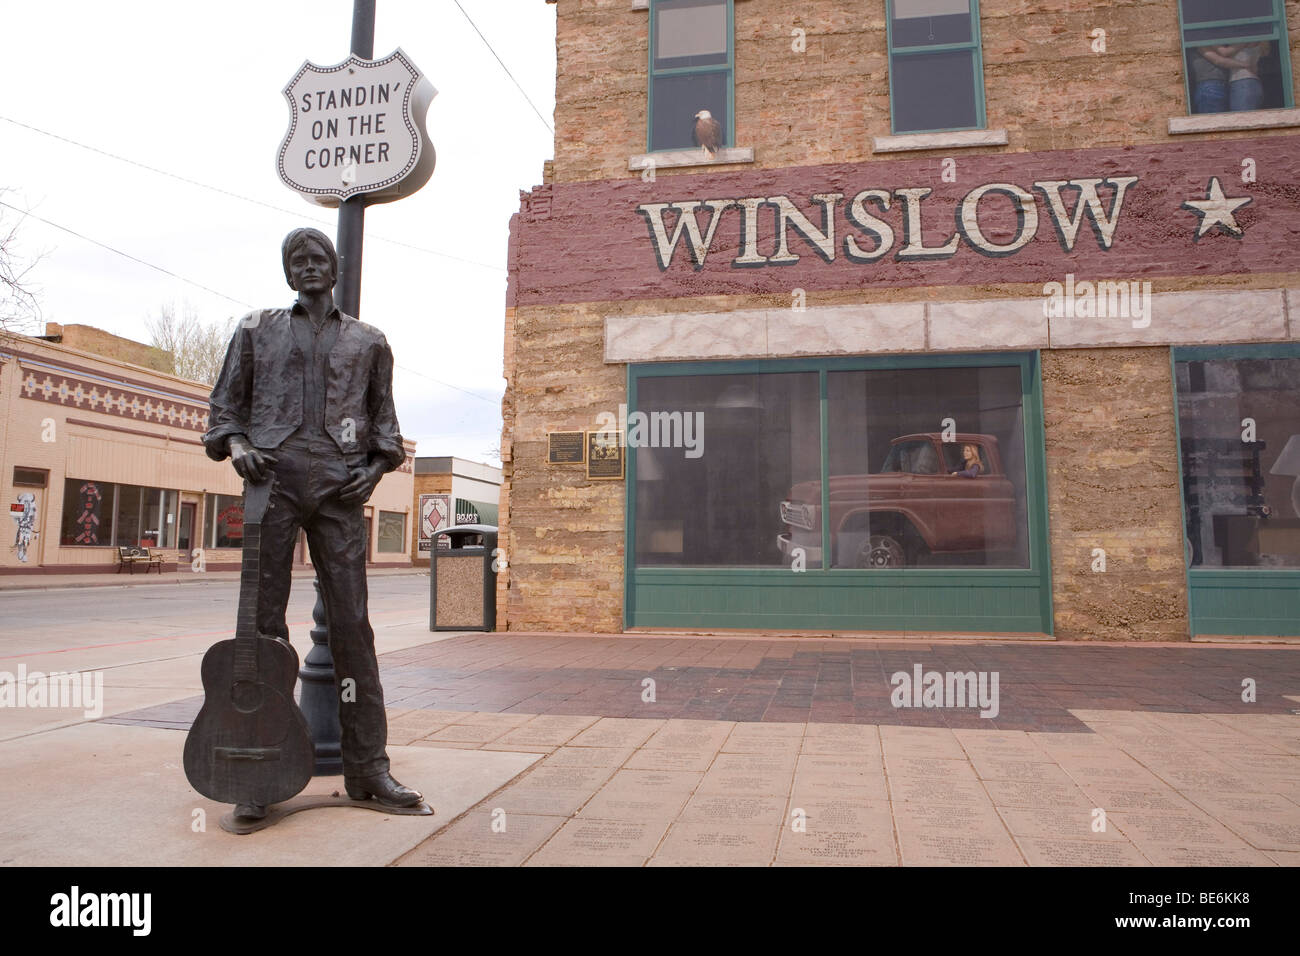 standing on the corner in winslow arizona stock photo 25962700 alamy. Black Bedroom Furniture Sets. Home Design Ideas